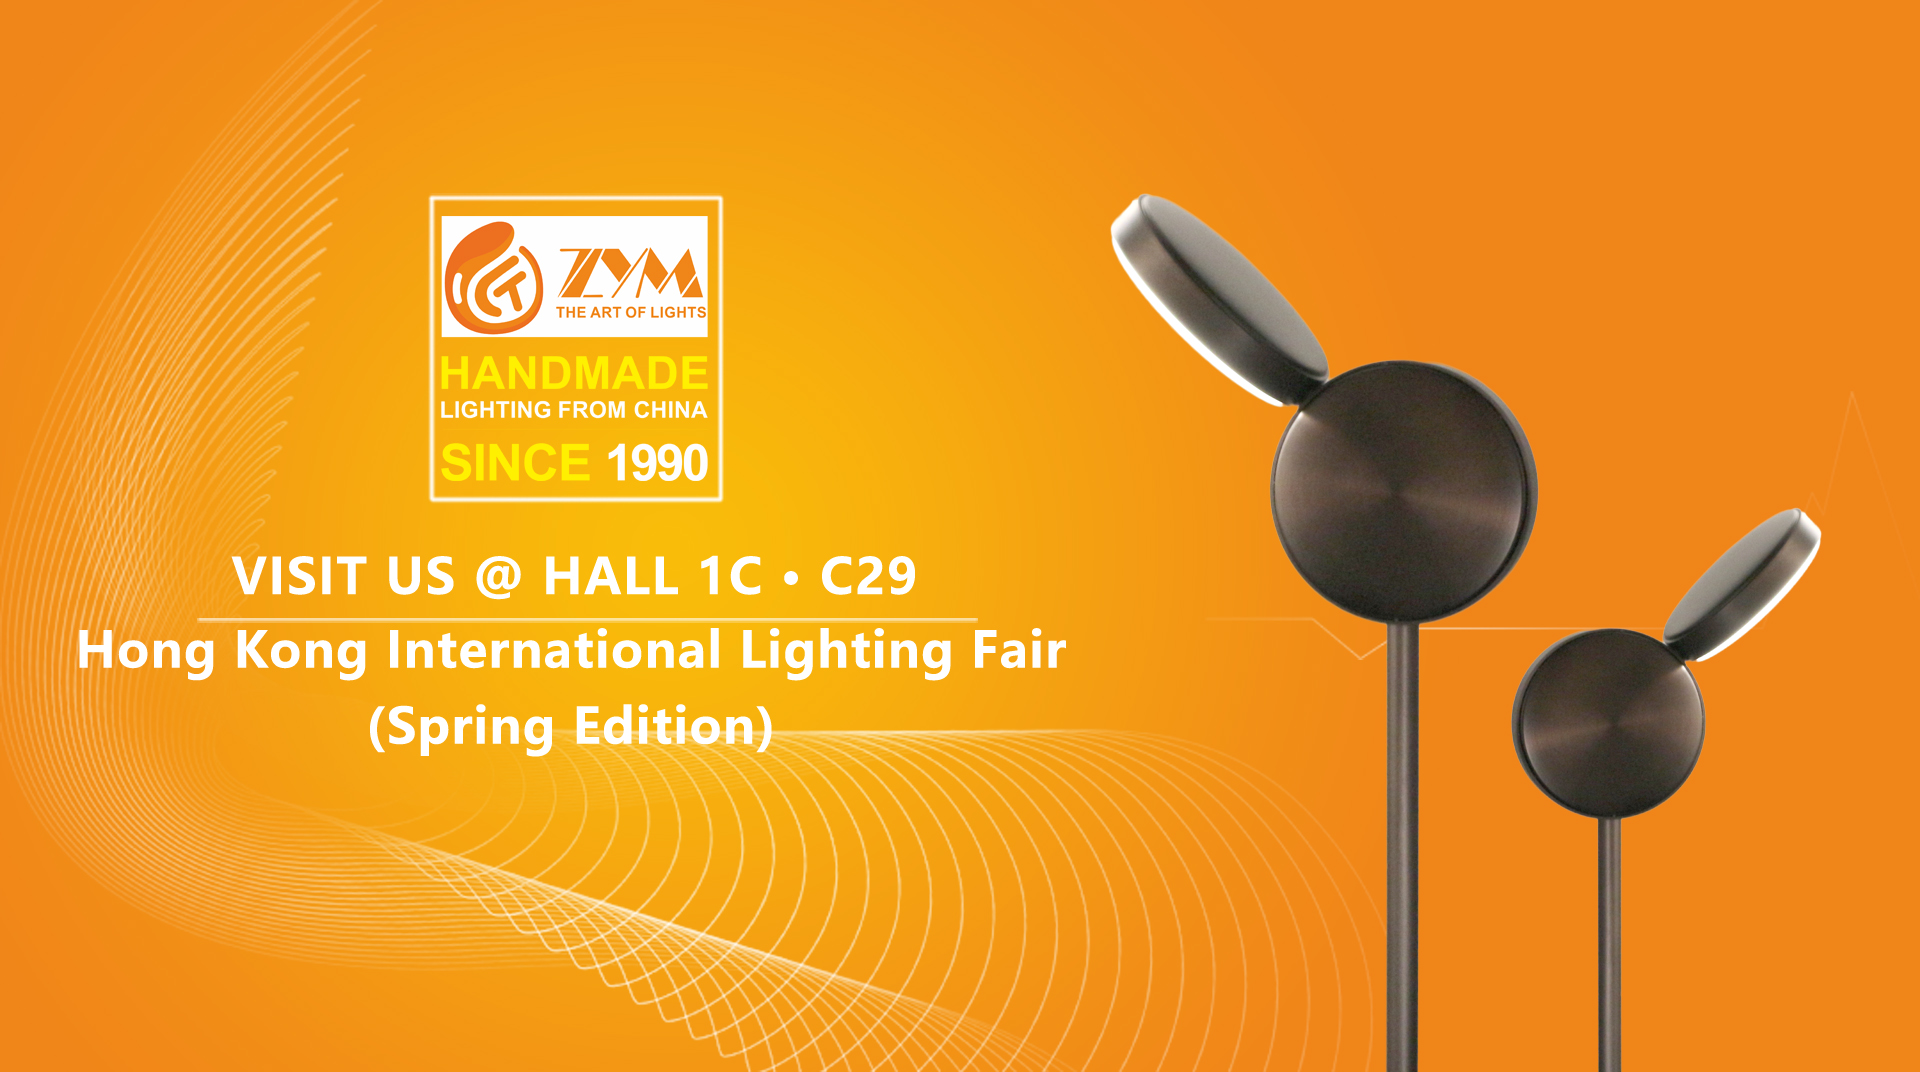 Hong Kong International Lighting Fair | VISIT US @ HALL 1C • C29